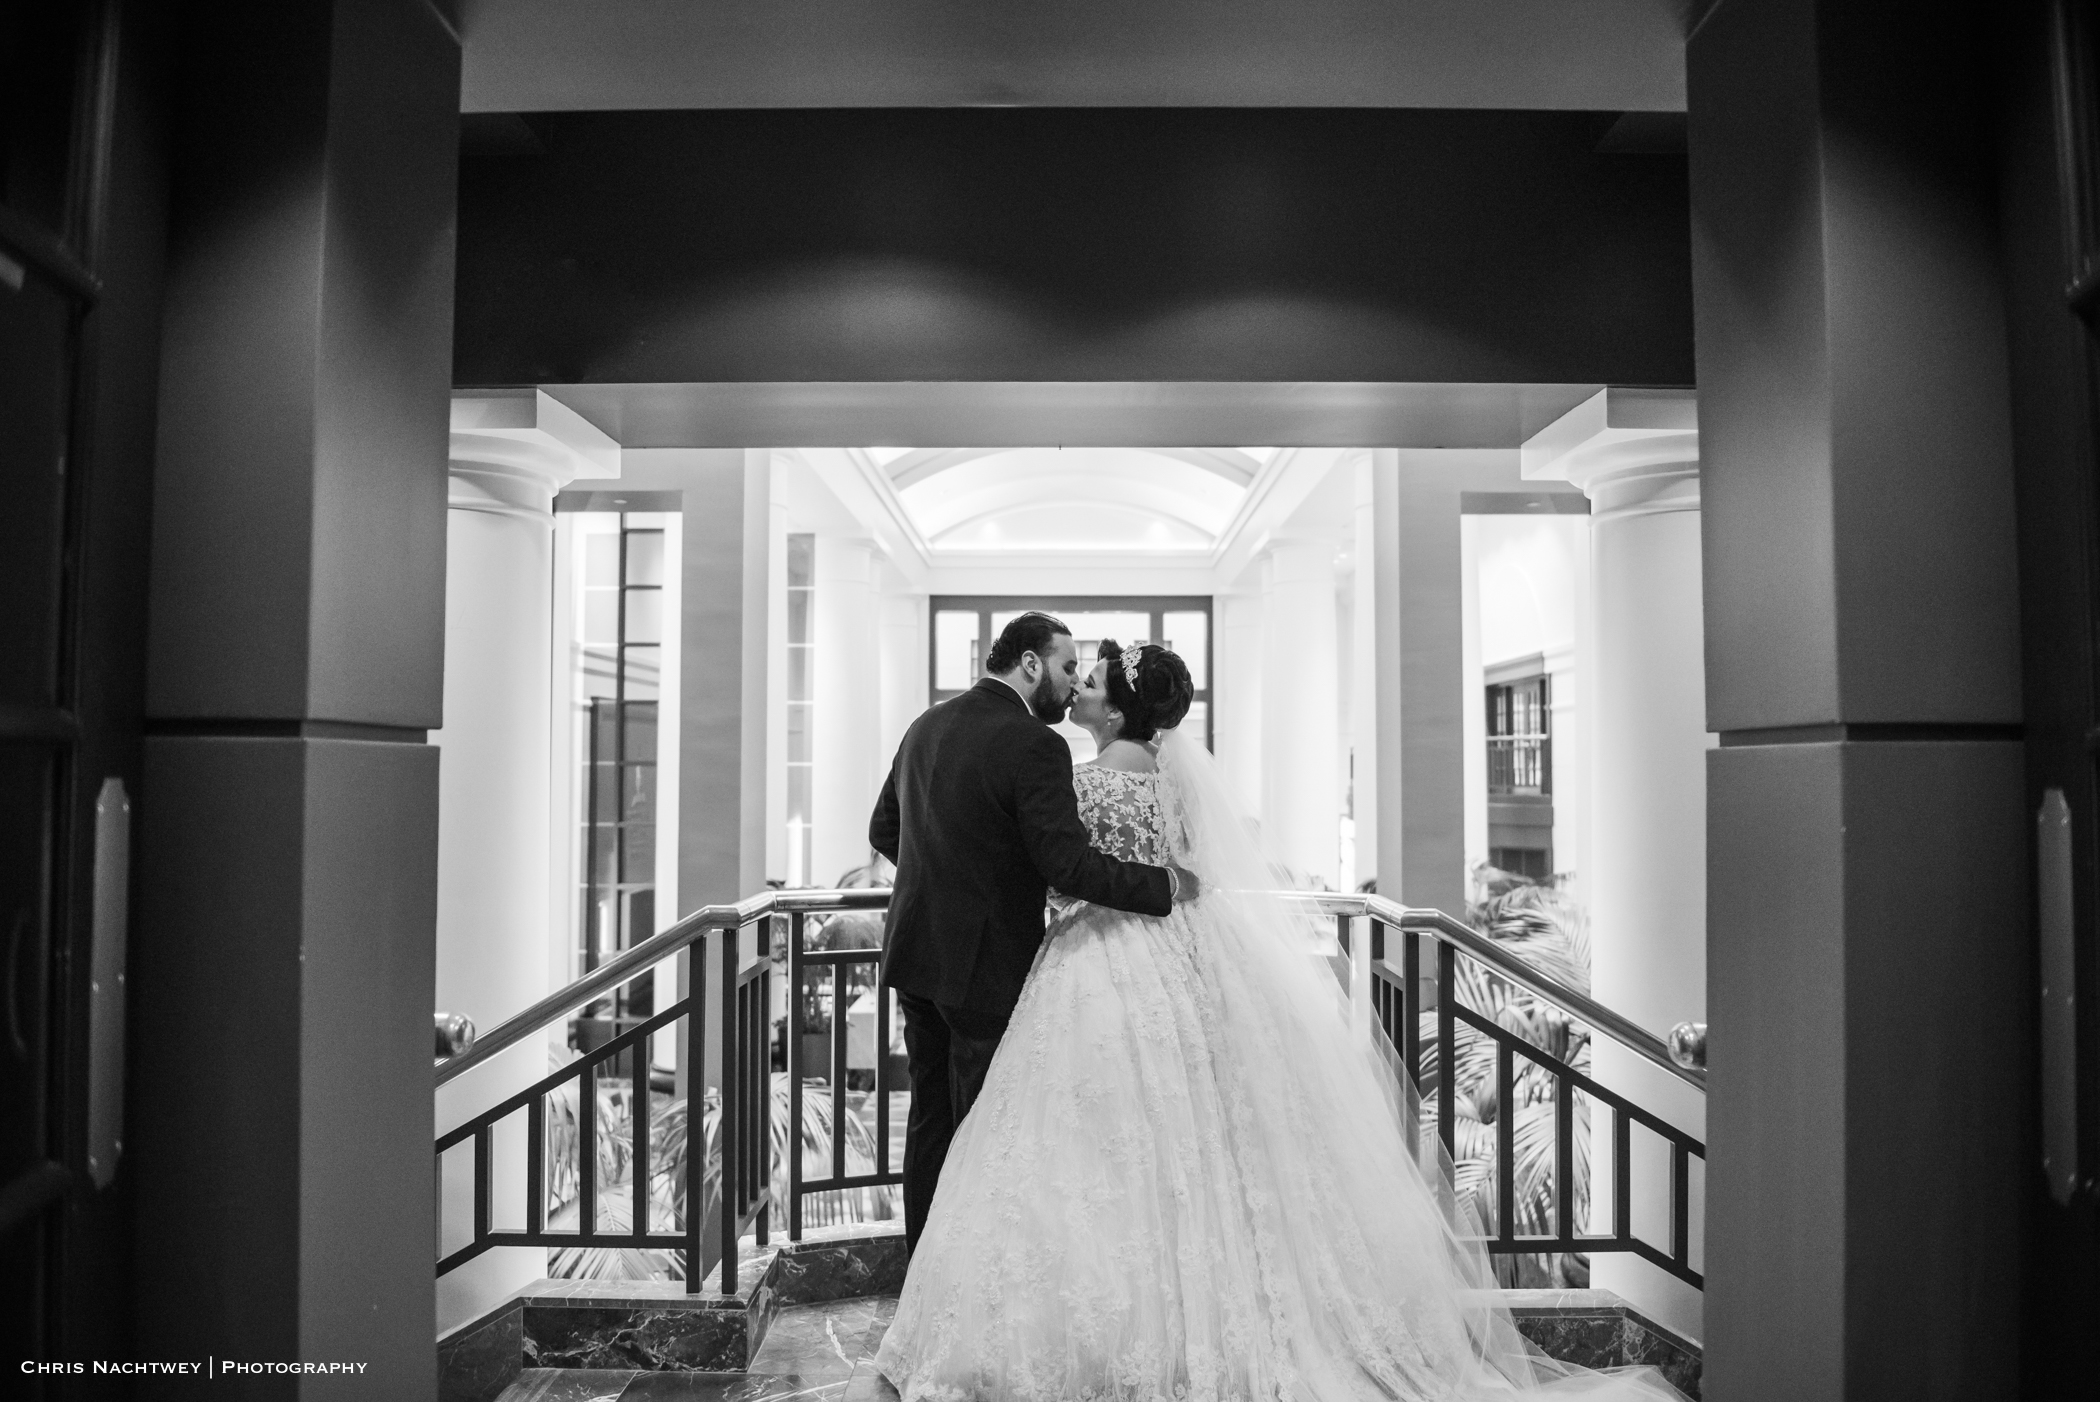 society-room-wedding-photos-hartford-ct-chris-nachtwey-photography-2019-13.jpg